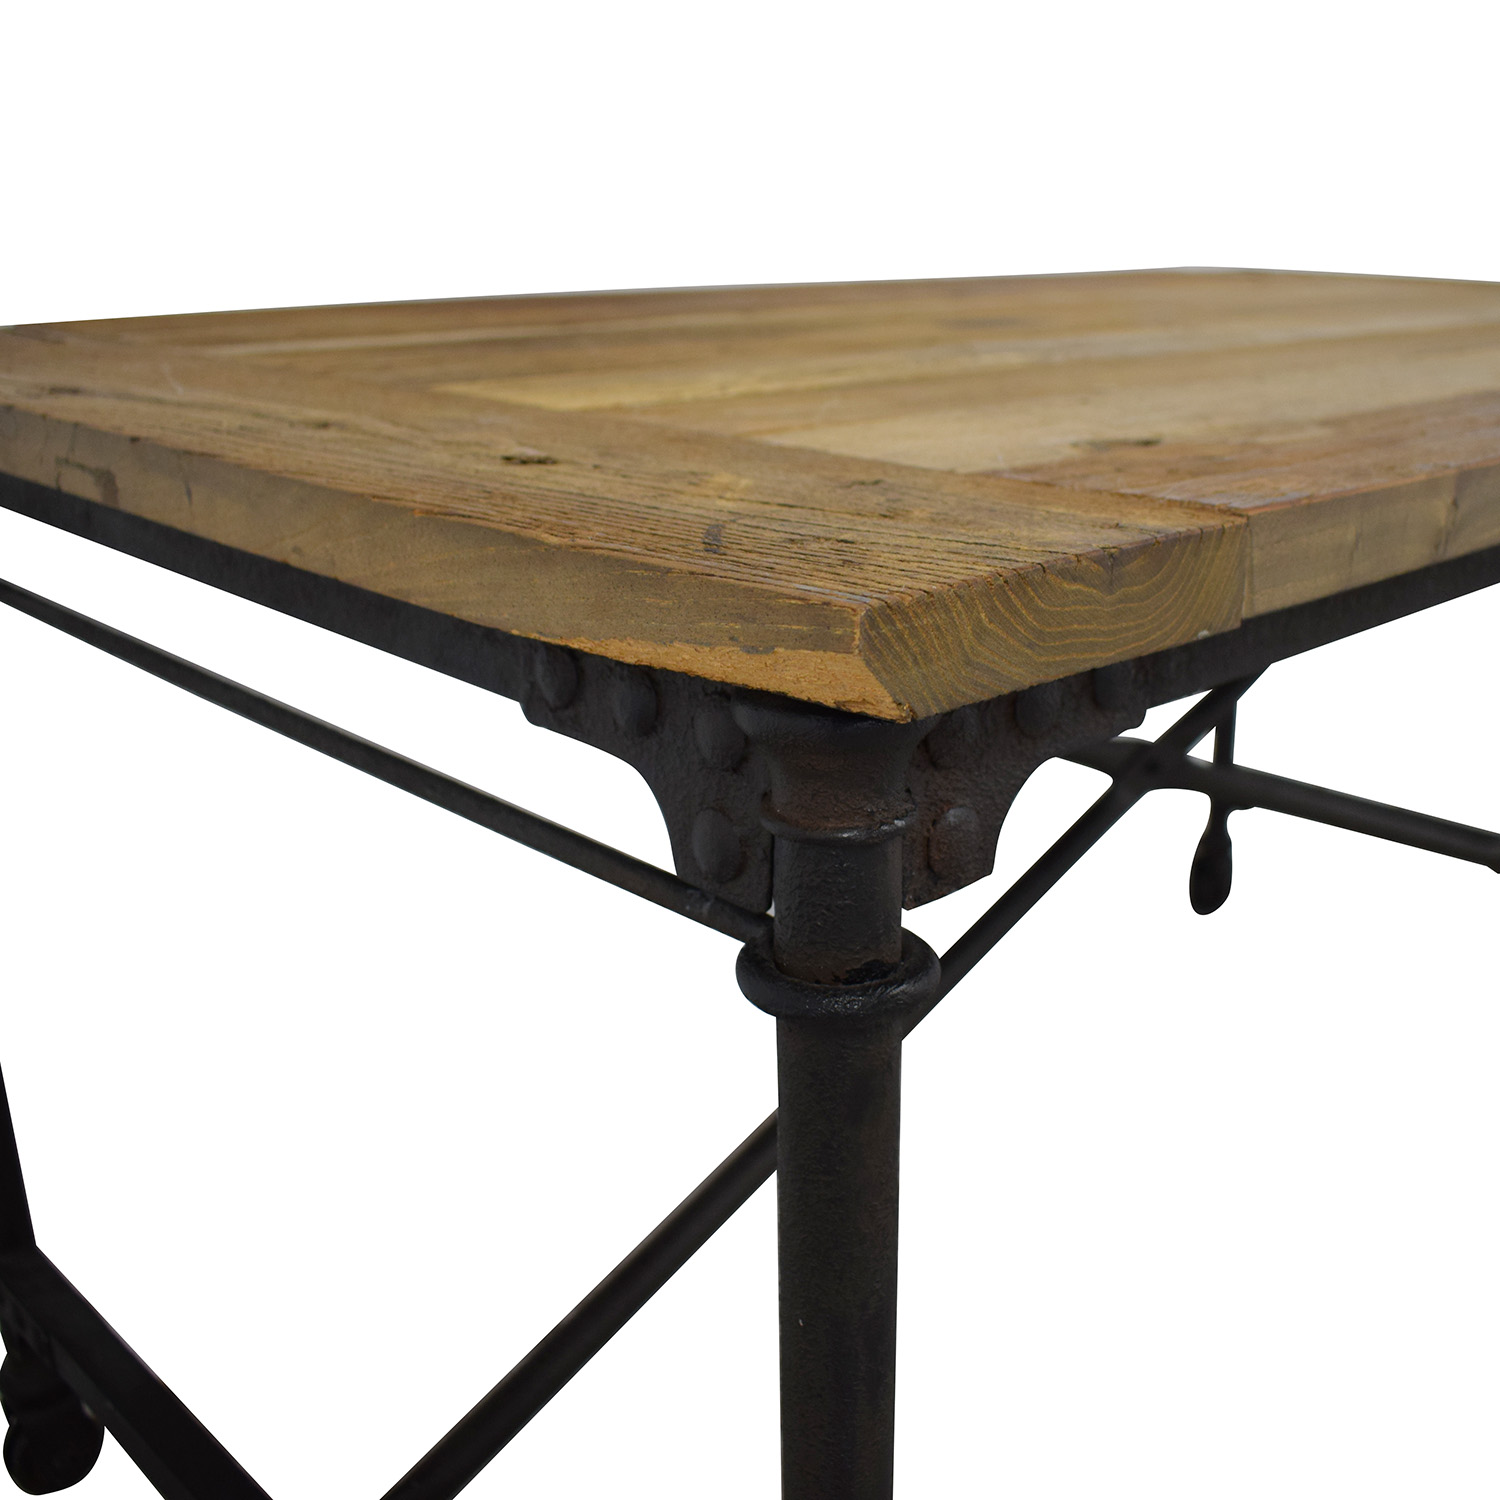 Restoration Hardware Restoration Hardware Flatiron Desk second hand